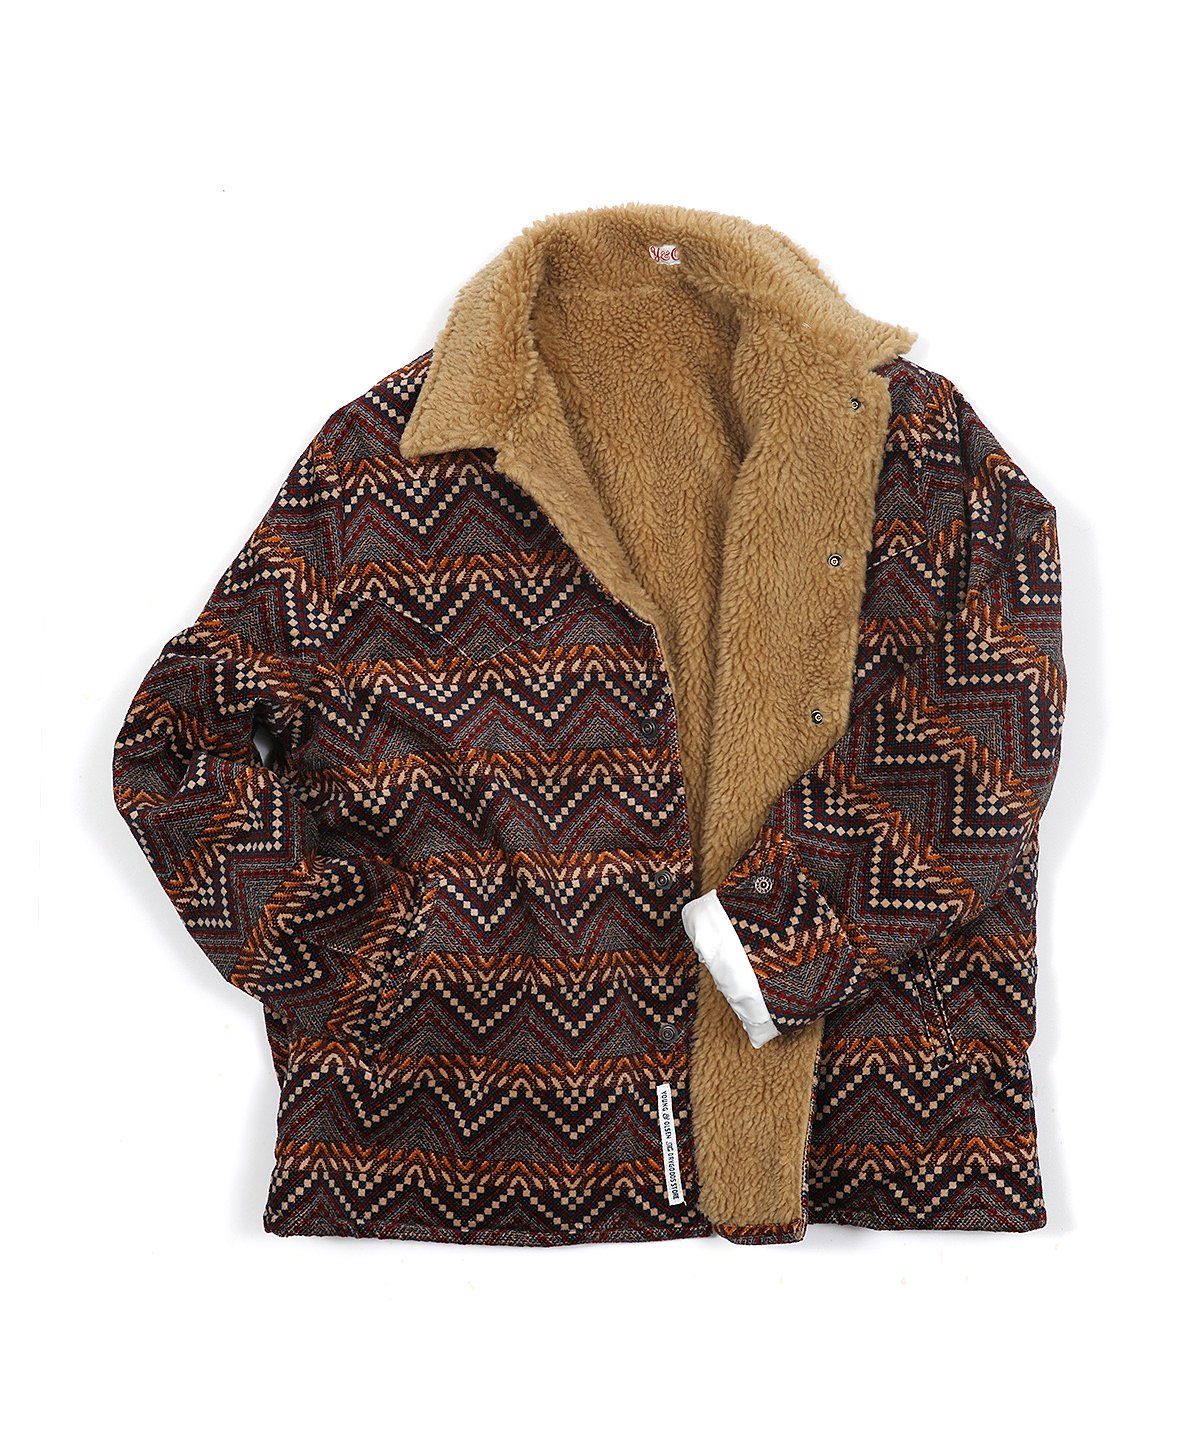 WINTER WESTERN JACKET